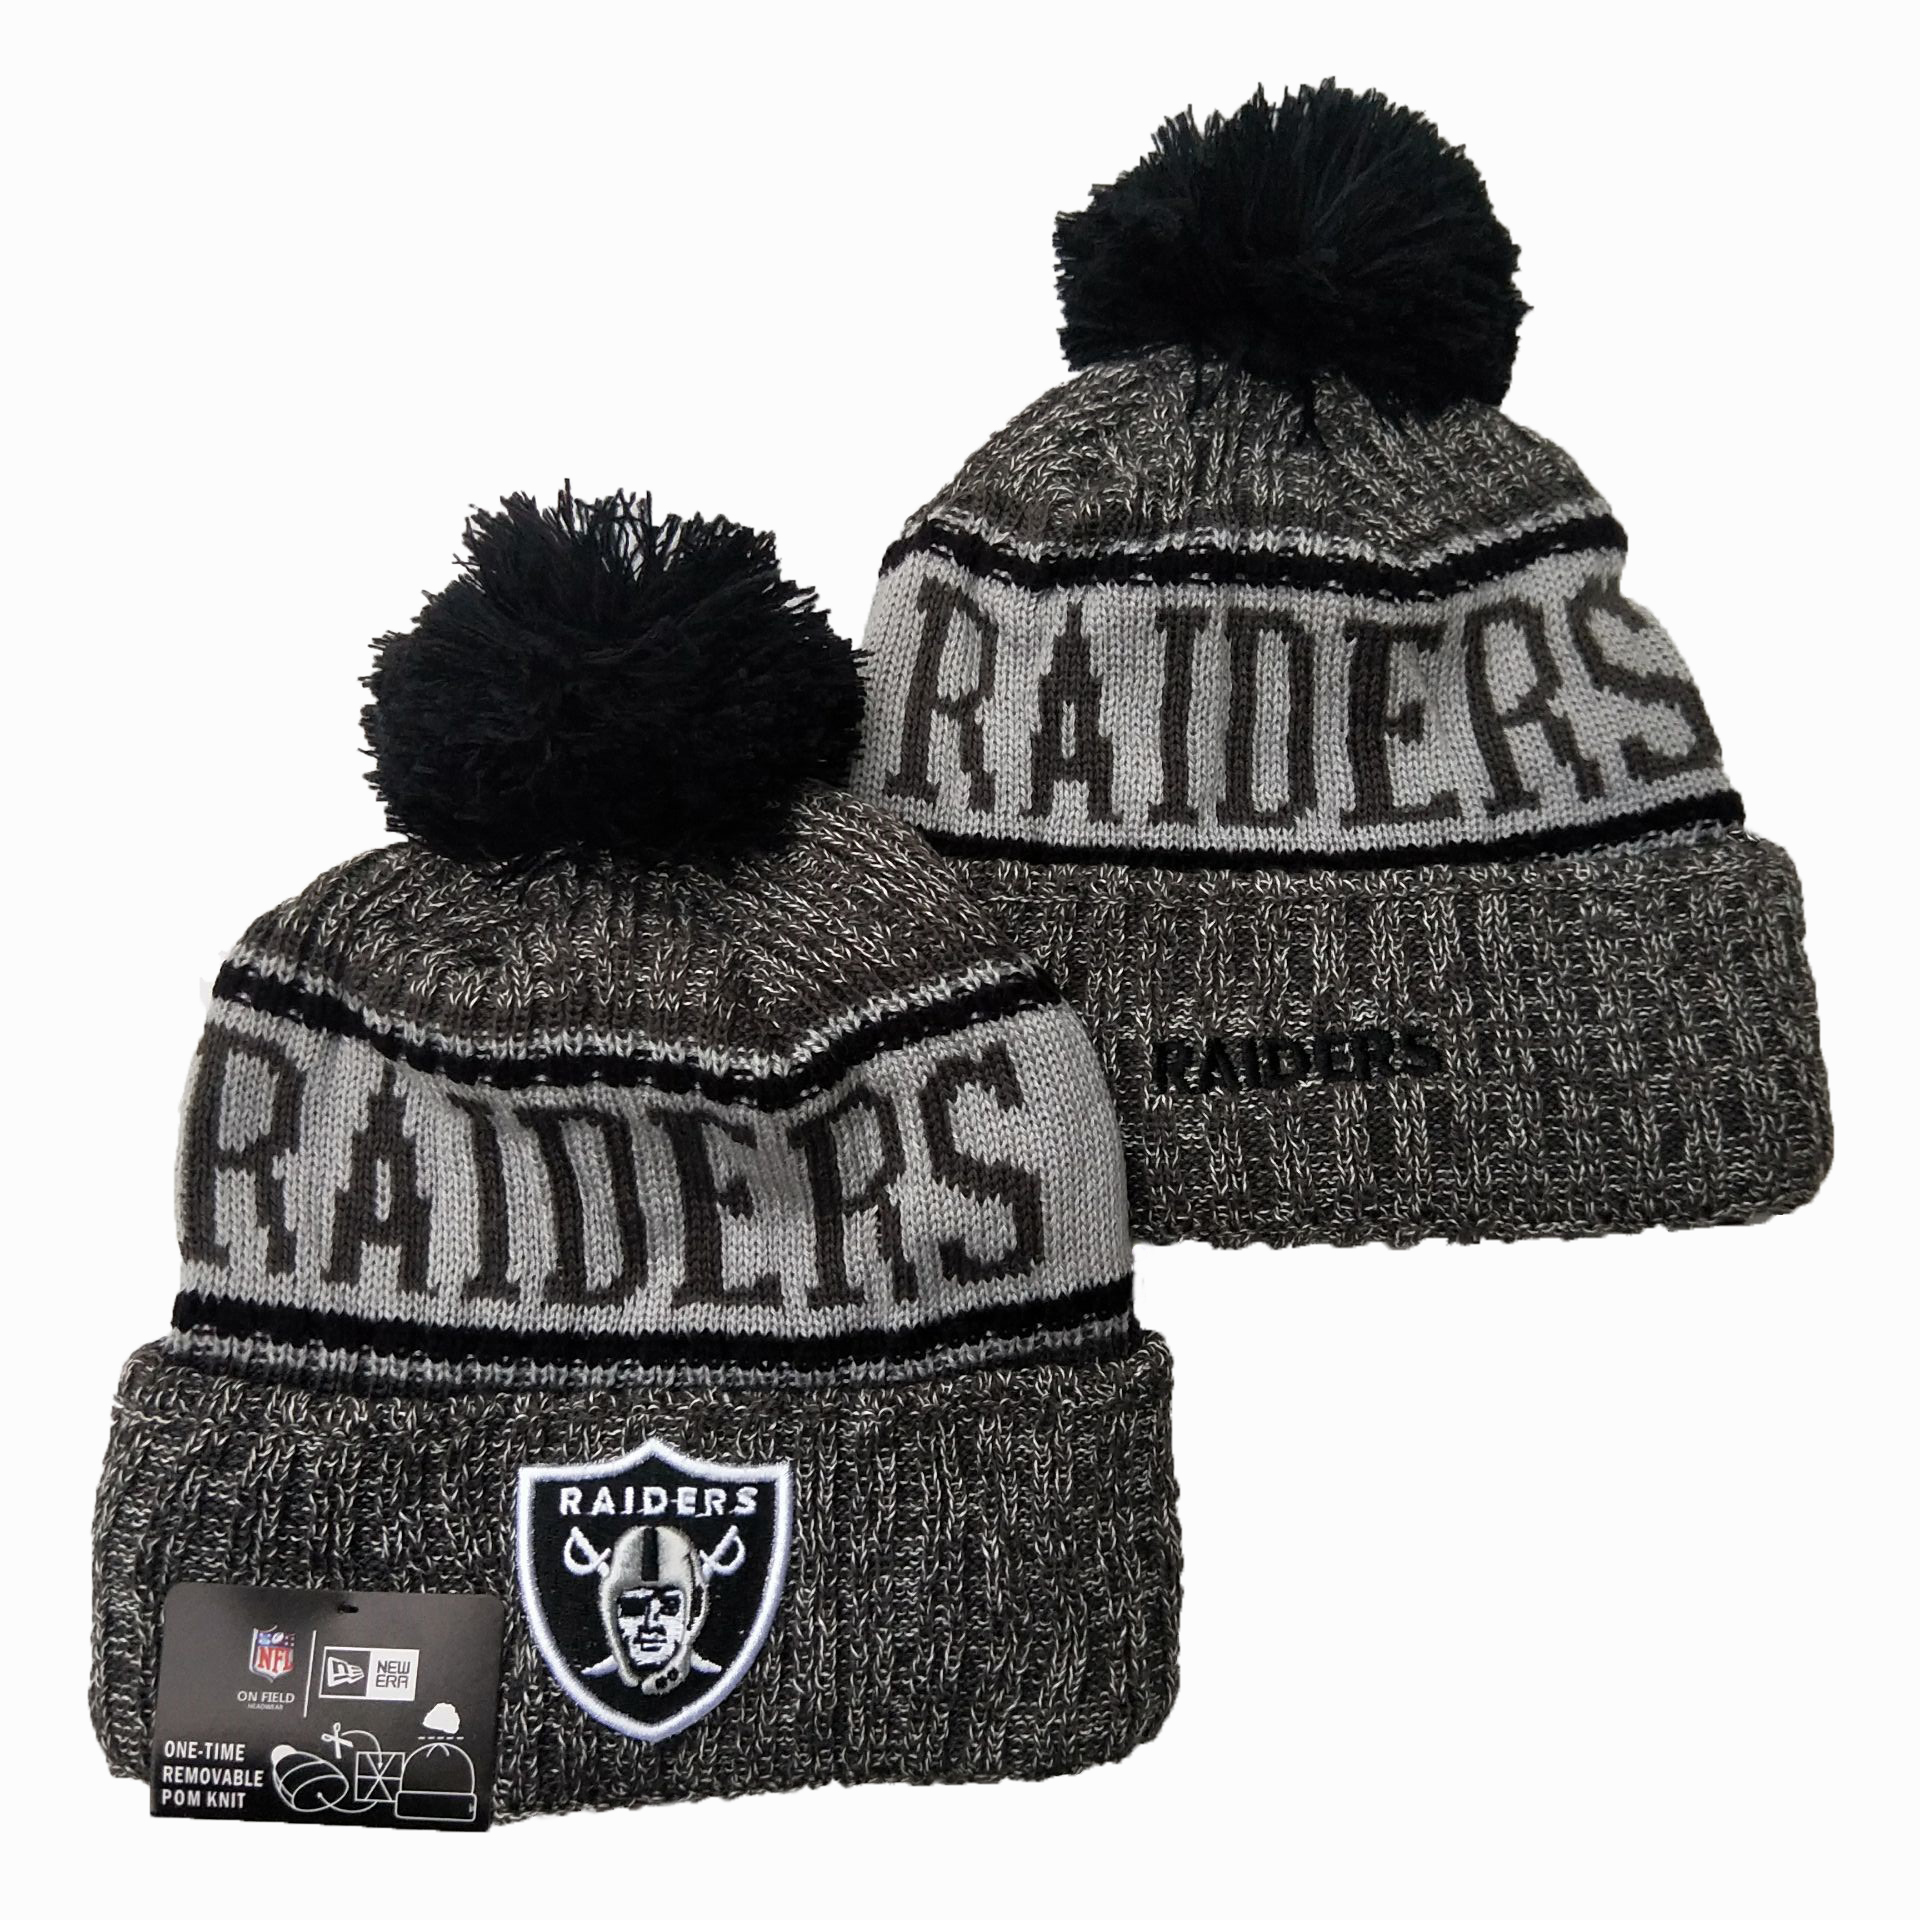 Las Vegas Raiders Knit Hats 063